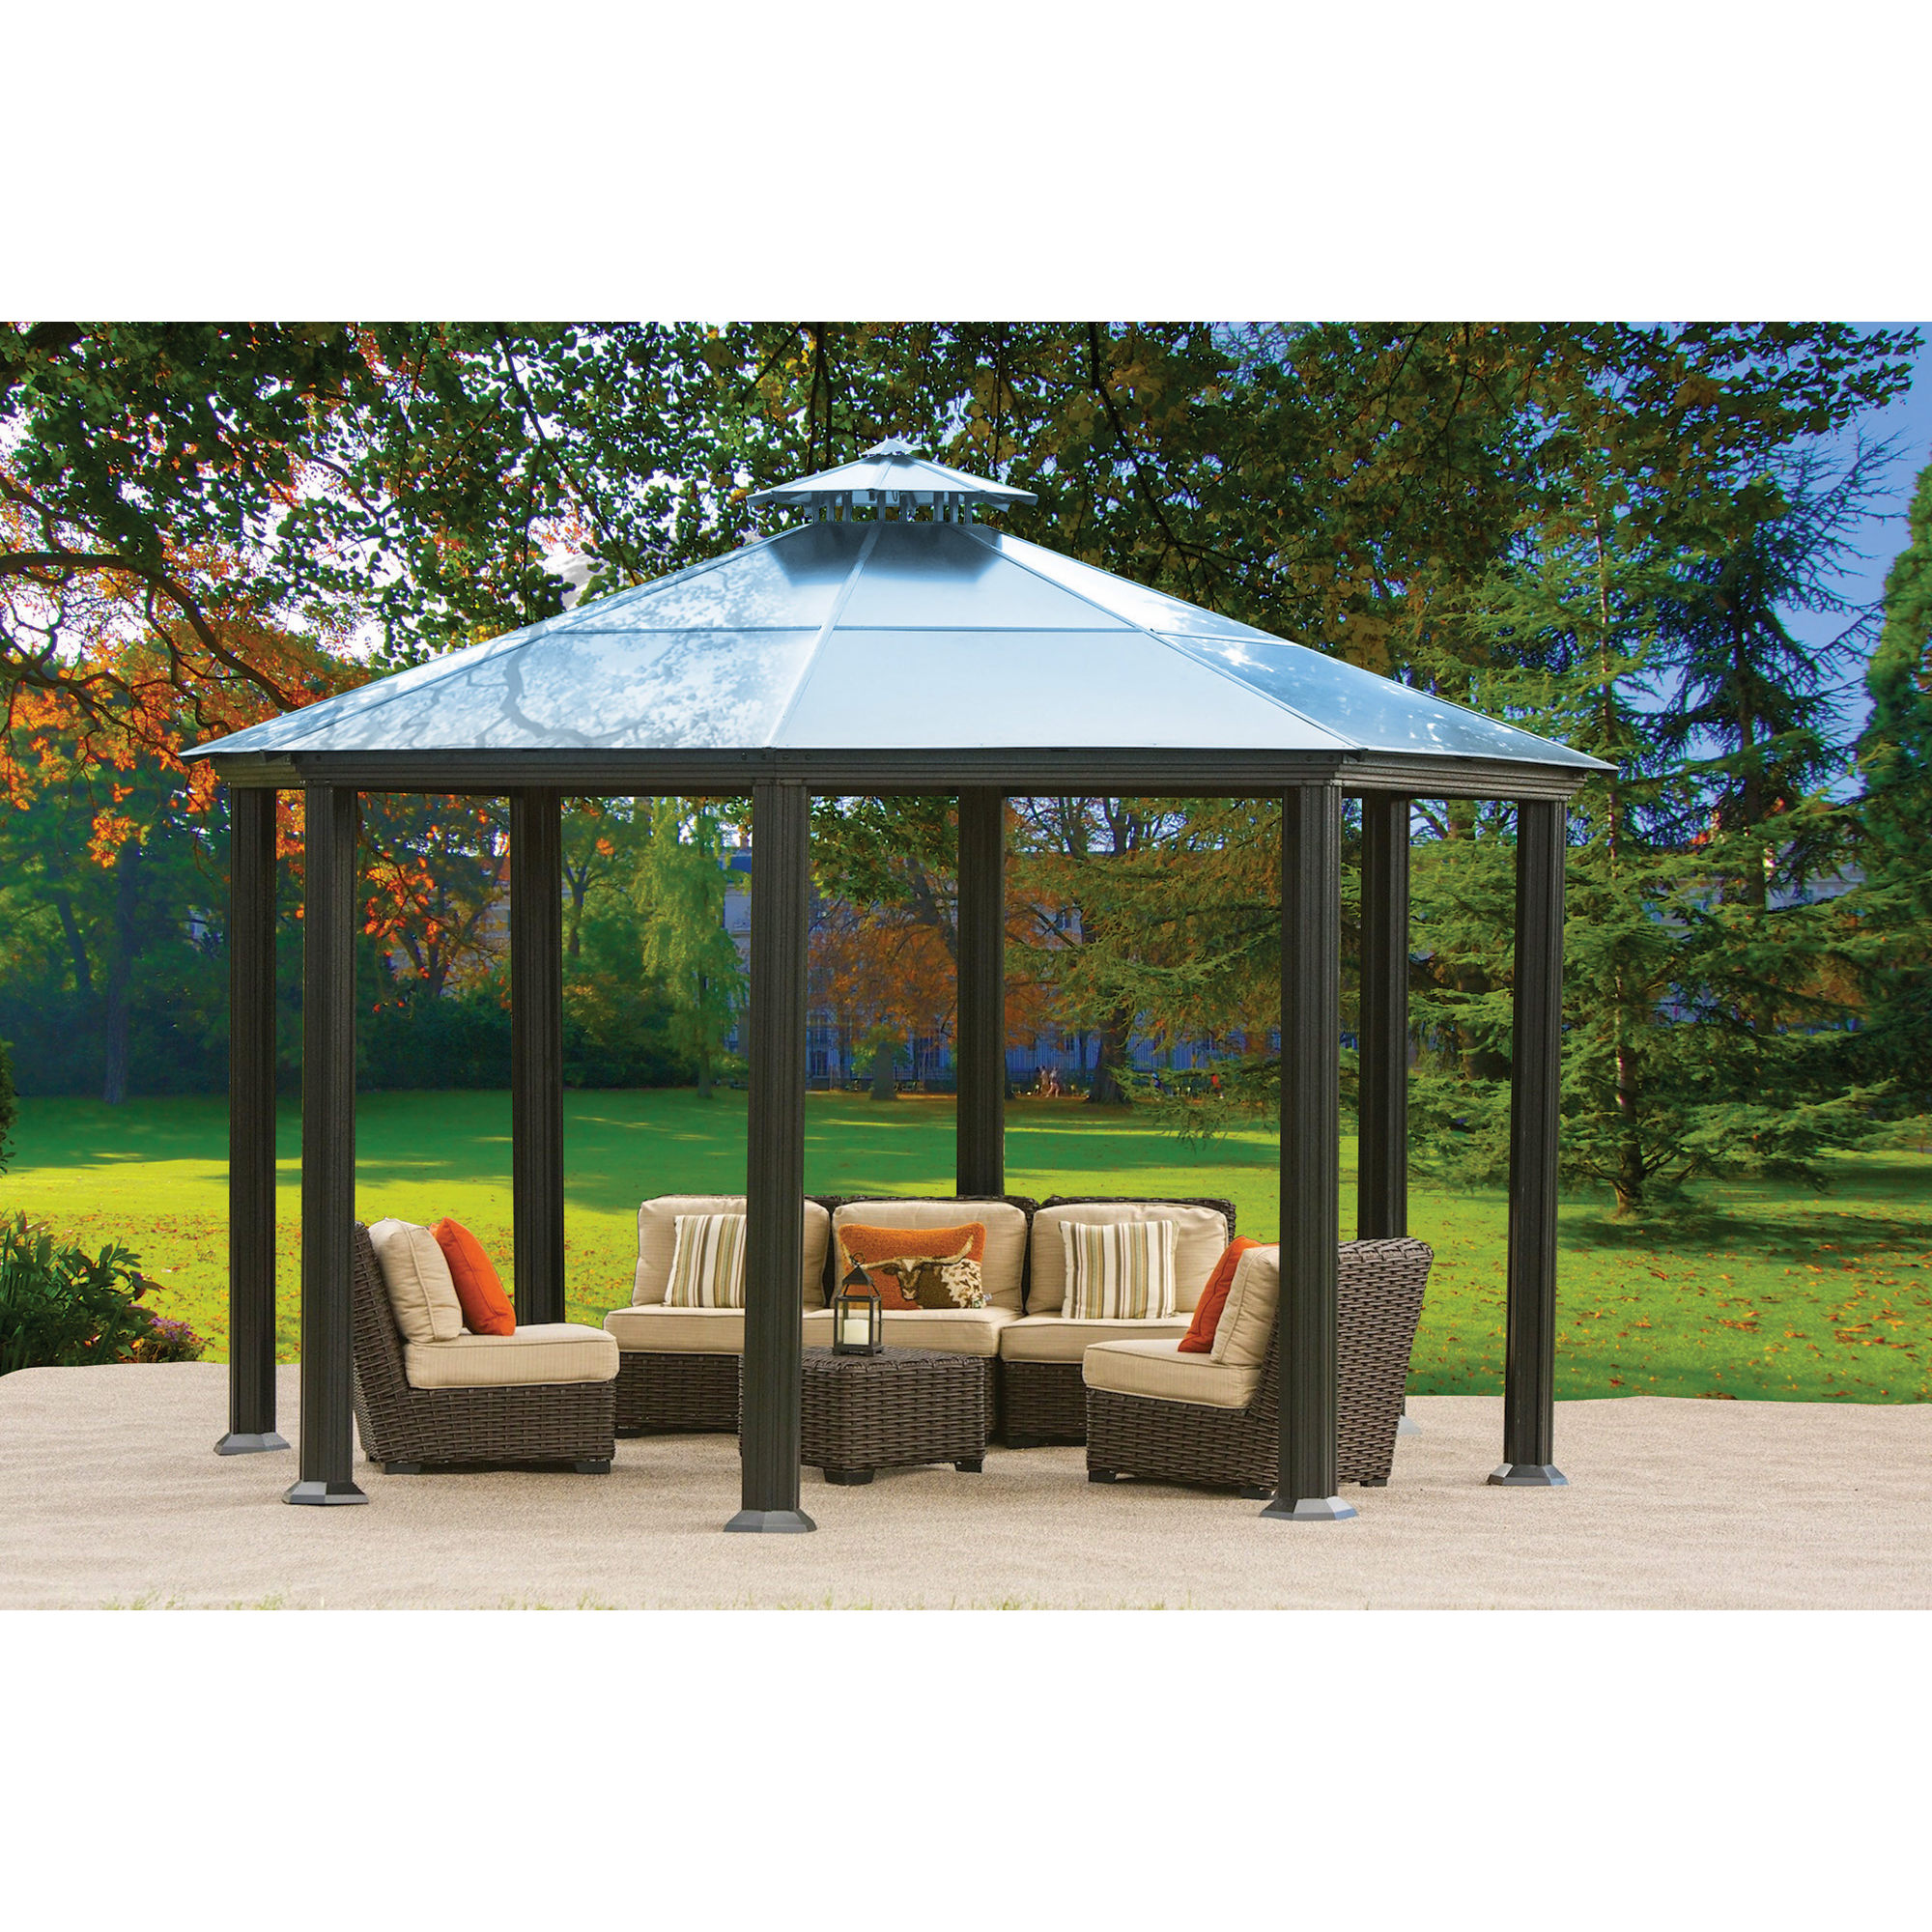 Dazzling sunjoy gazebo for garden ideas with sunjoy hardtop gazebo and sunjoy grill gazebo